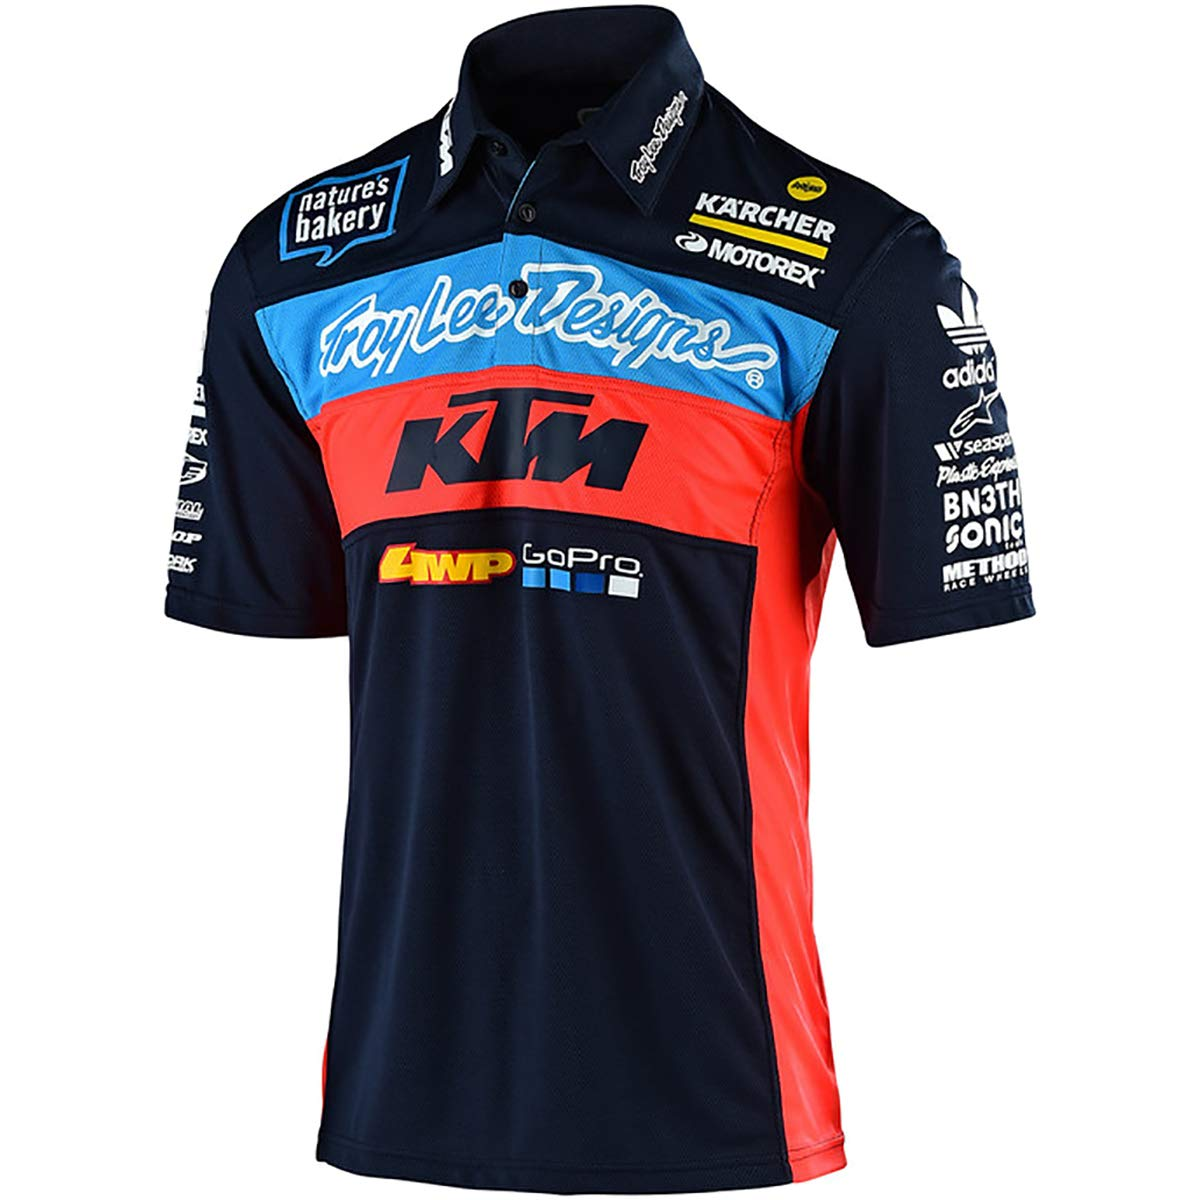 2019 Troy Lee Designs Men's KTM Team Pit Shirts,2X-Large,Navy